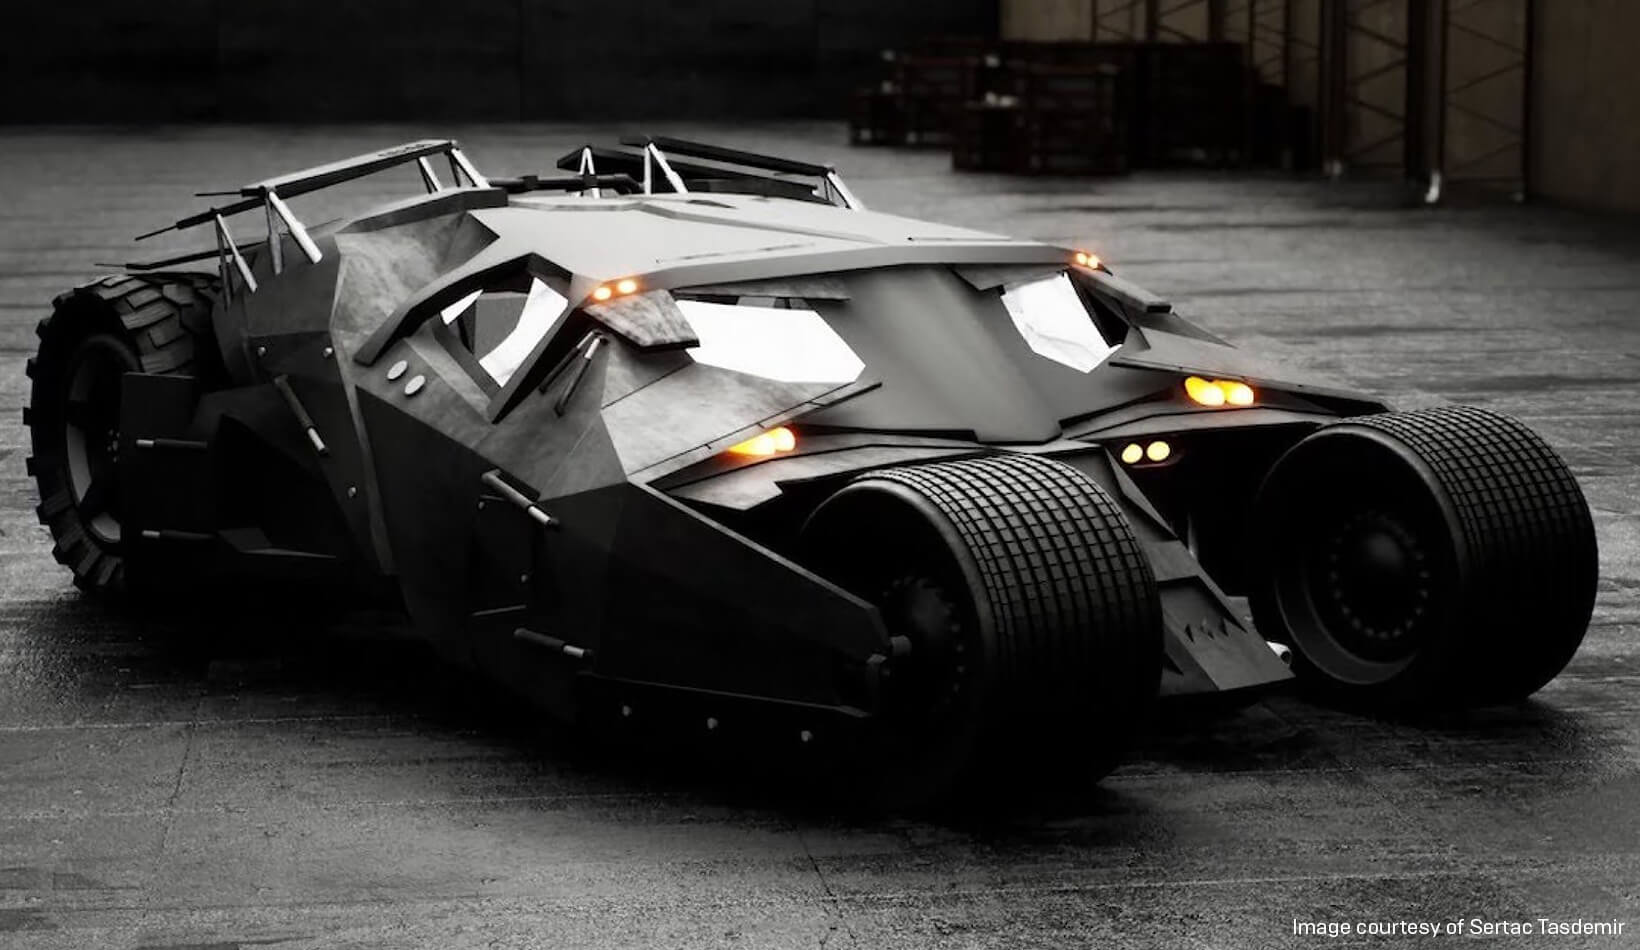 News_RayTracingME_blog_body_img_Batmobile.jpg